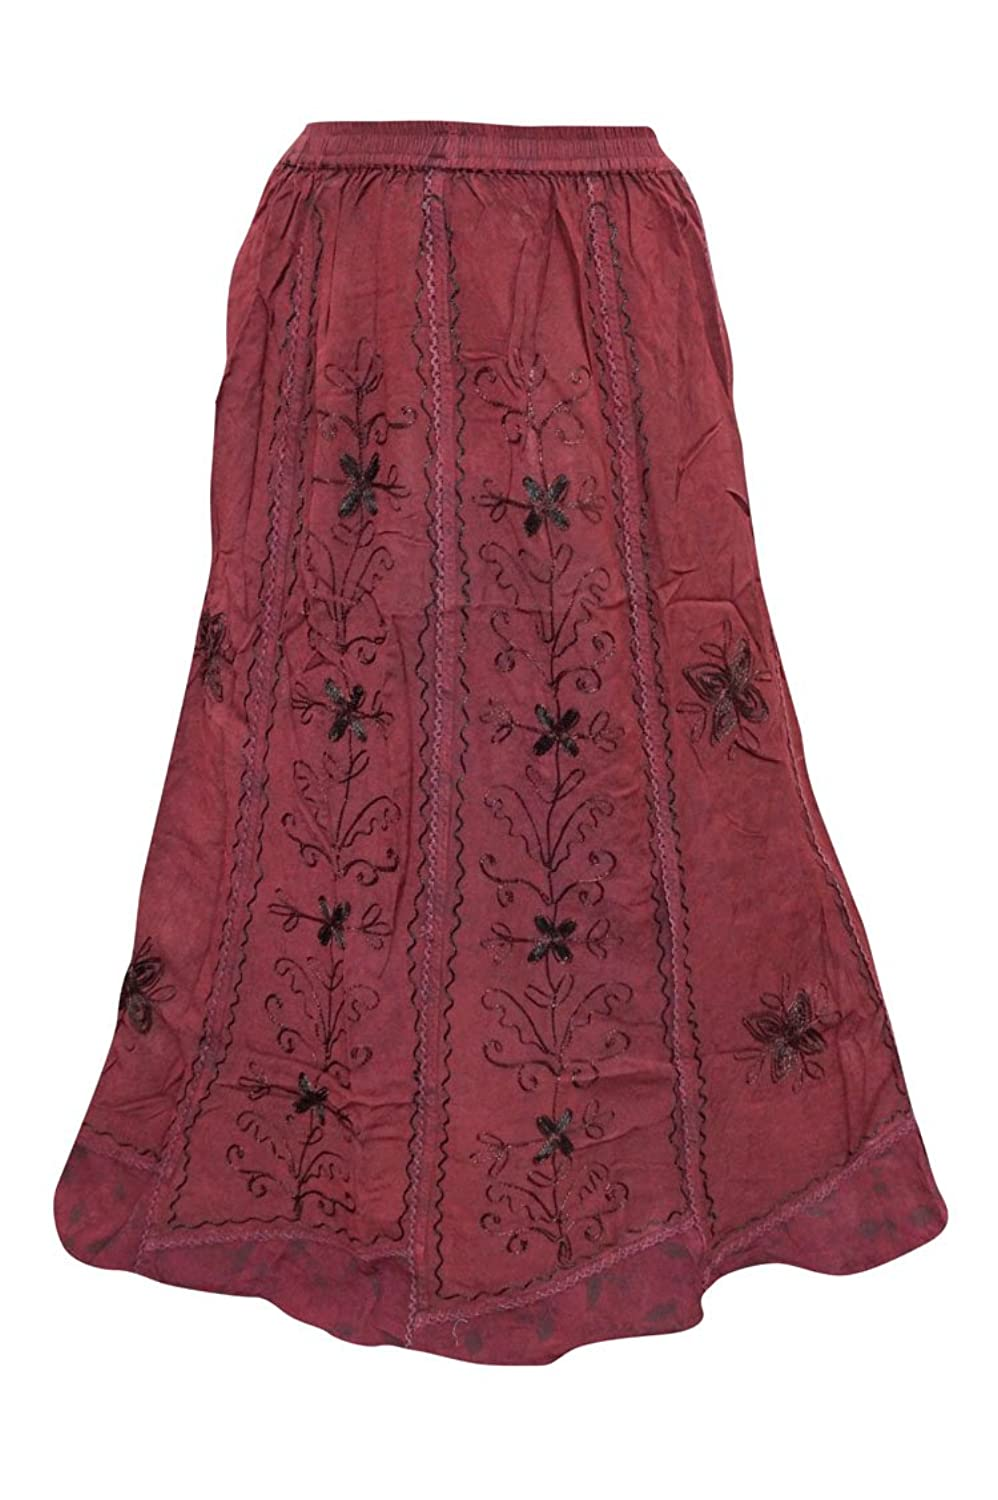 Mogul Interior Womens Maxi Skirt Embroidered Maroon Stonewashed Long Gypsy S/M/L